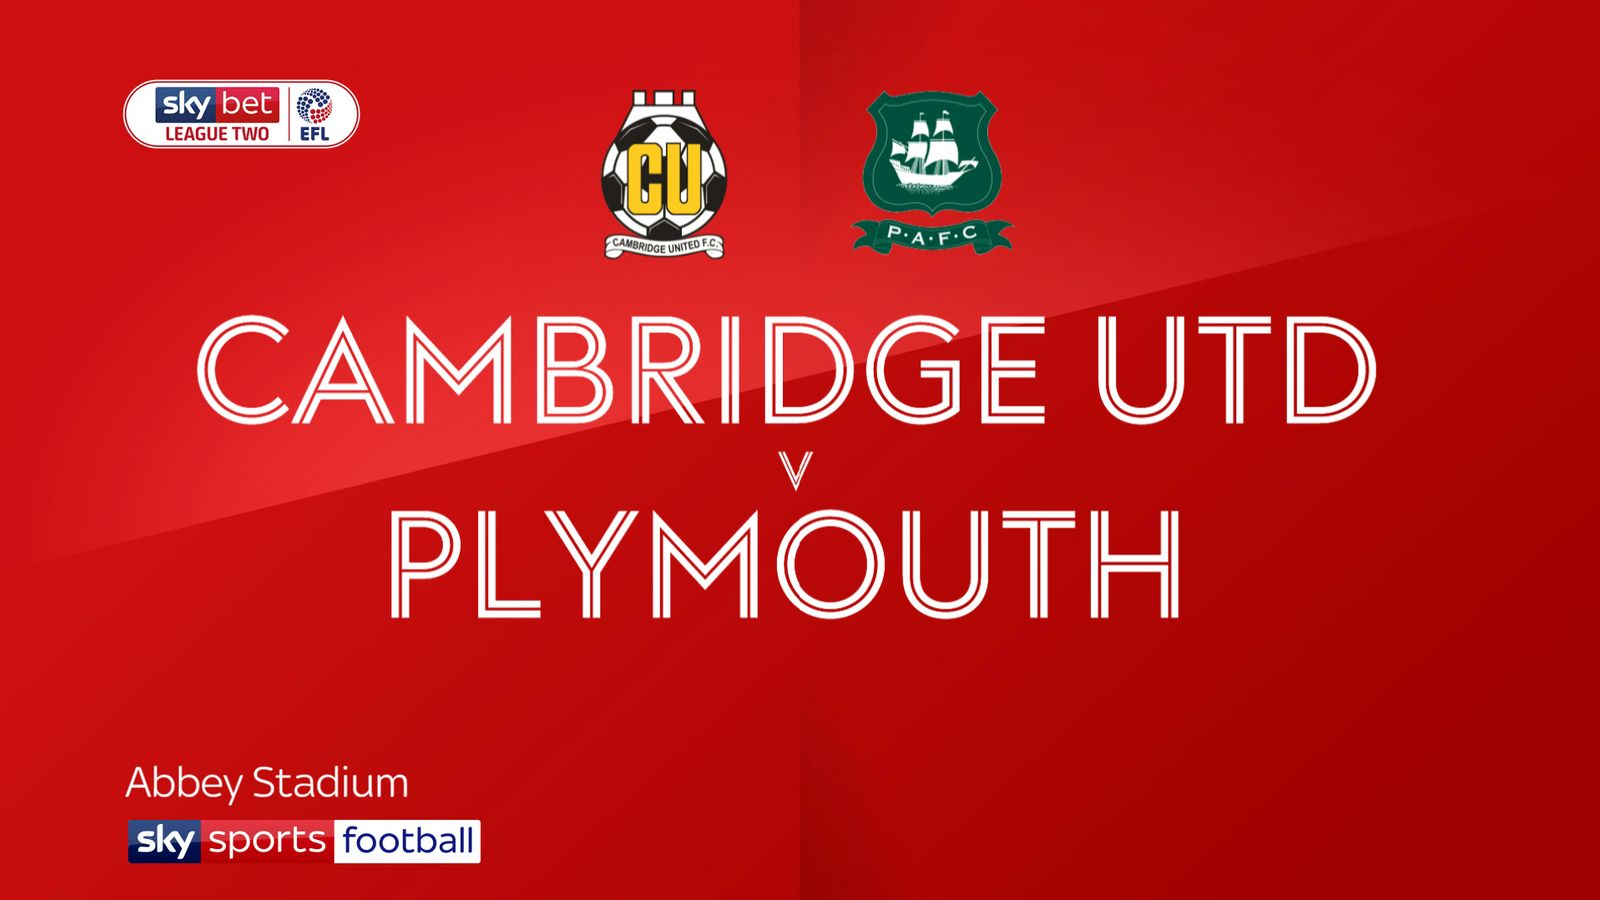 Cambridge 1-0 Plymouth: Kyle Knoyle goal gives hosts first win in seven